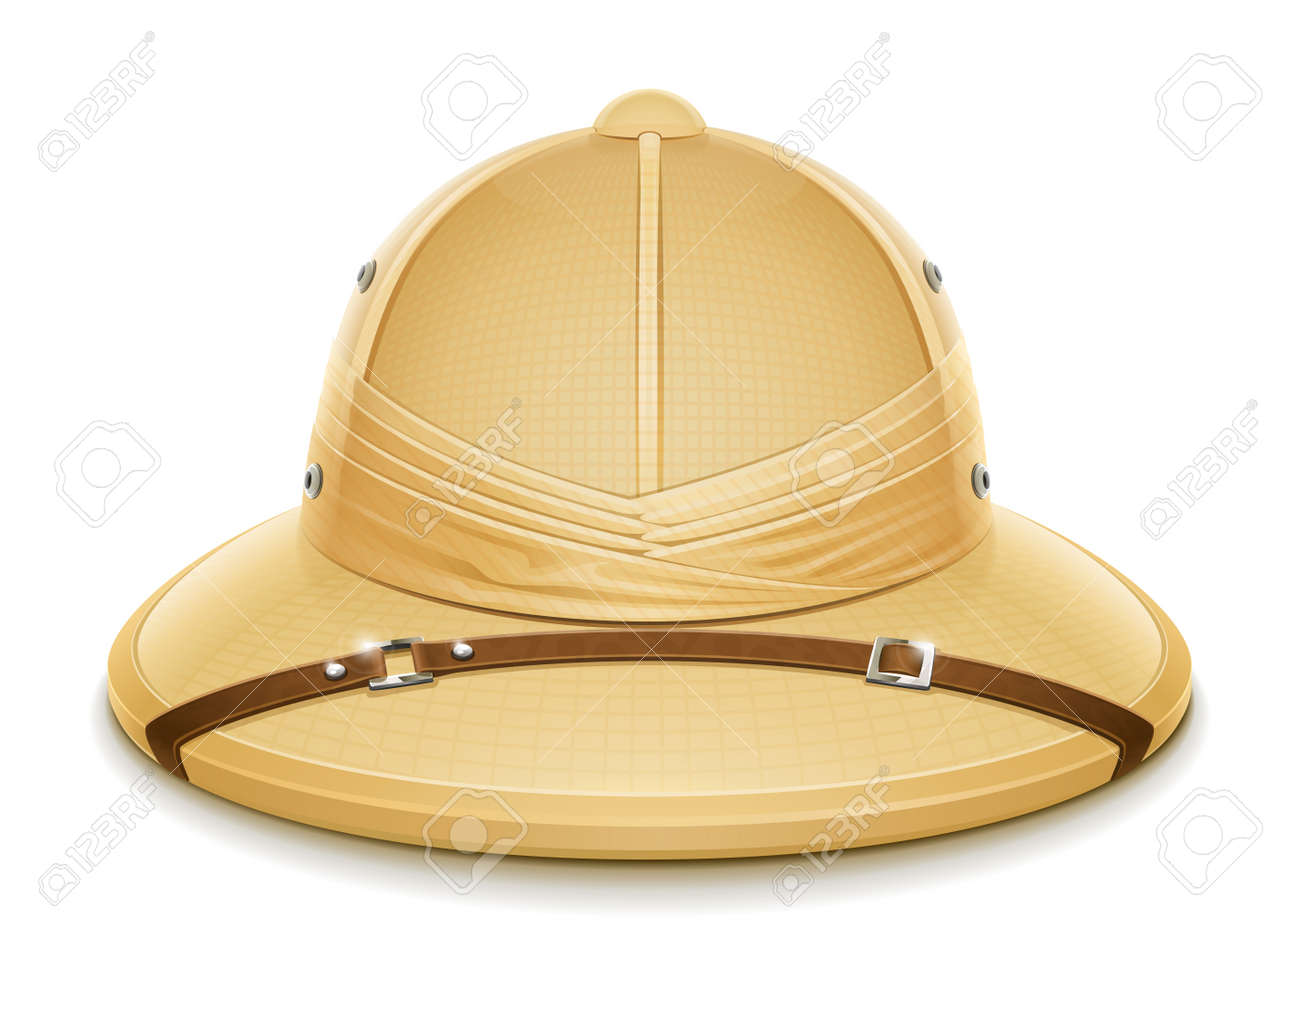 6344f7c24 pith helmet hat for safari vector illustration isolated on white..